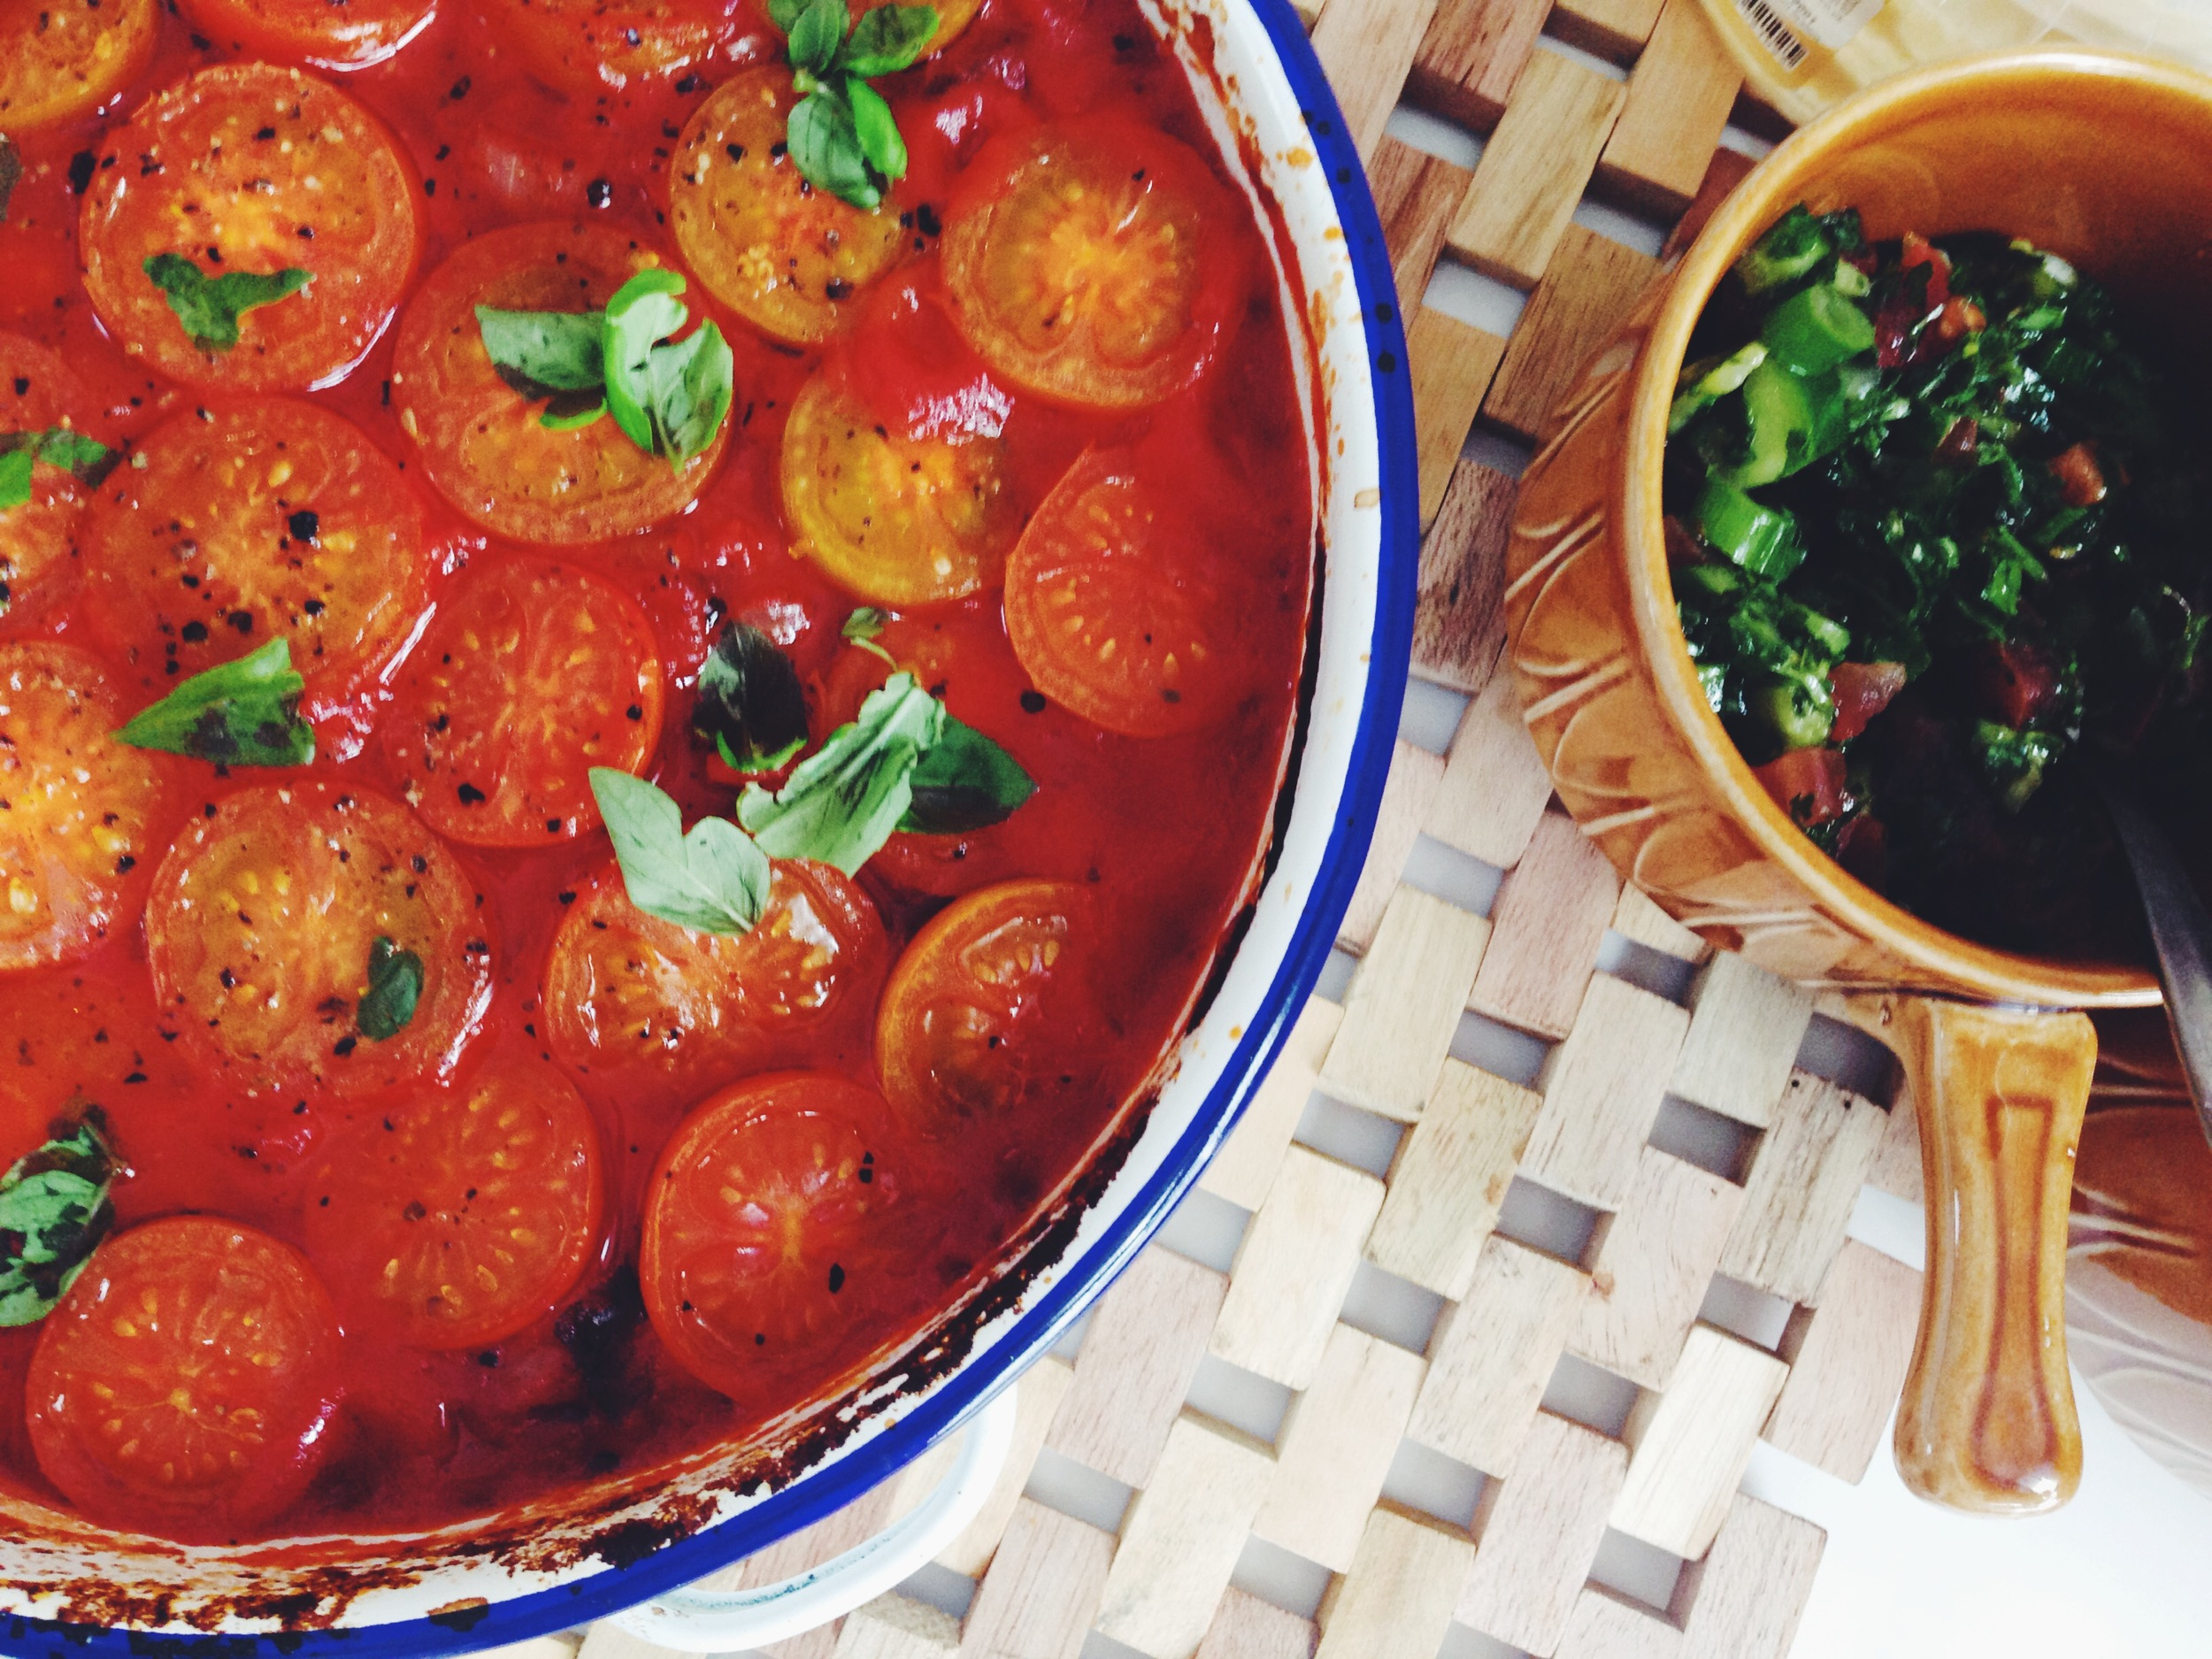 baked aubergine and cherry tomatoes